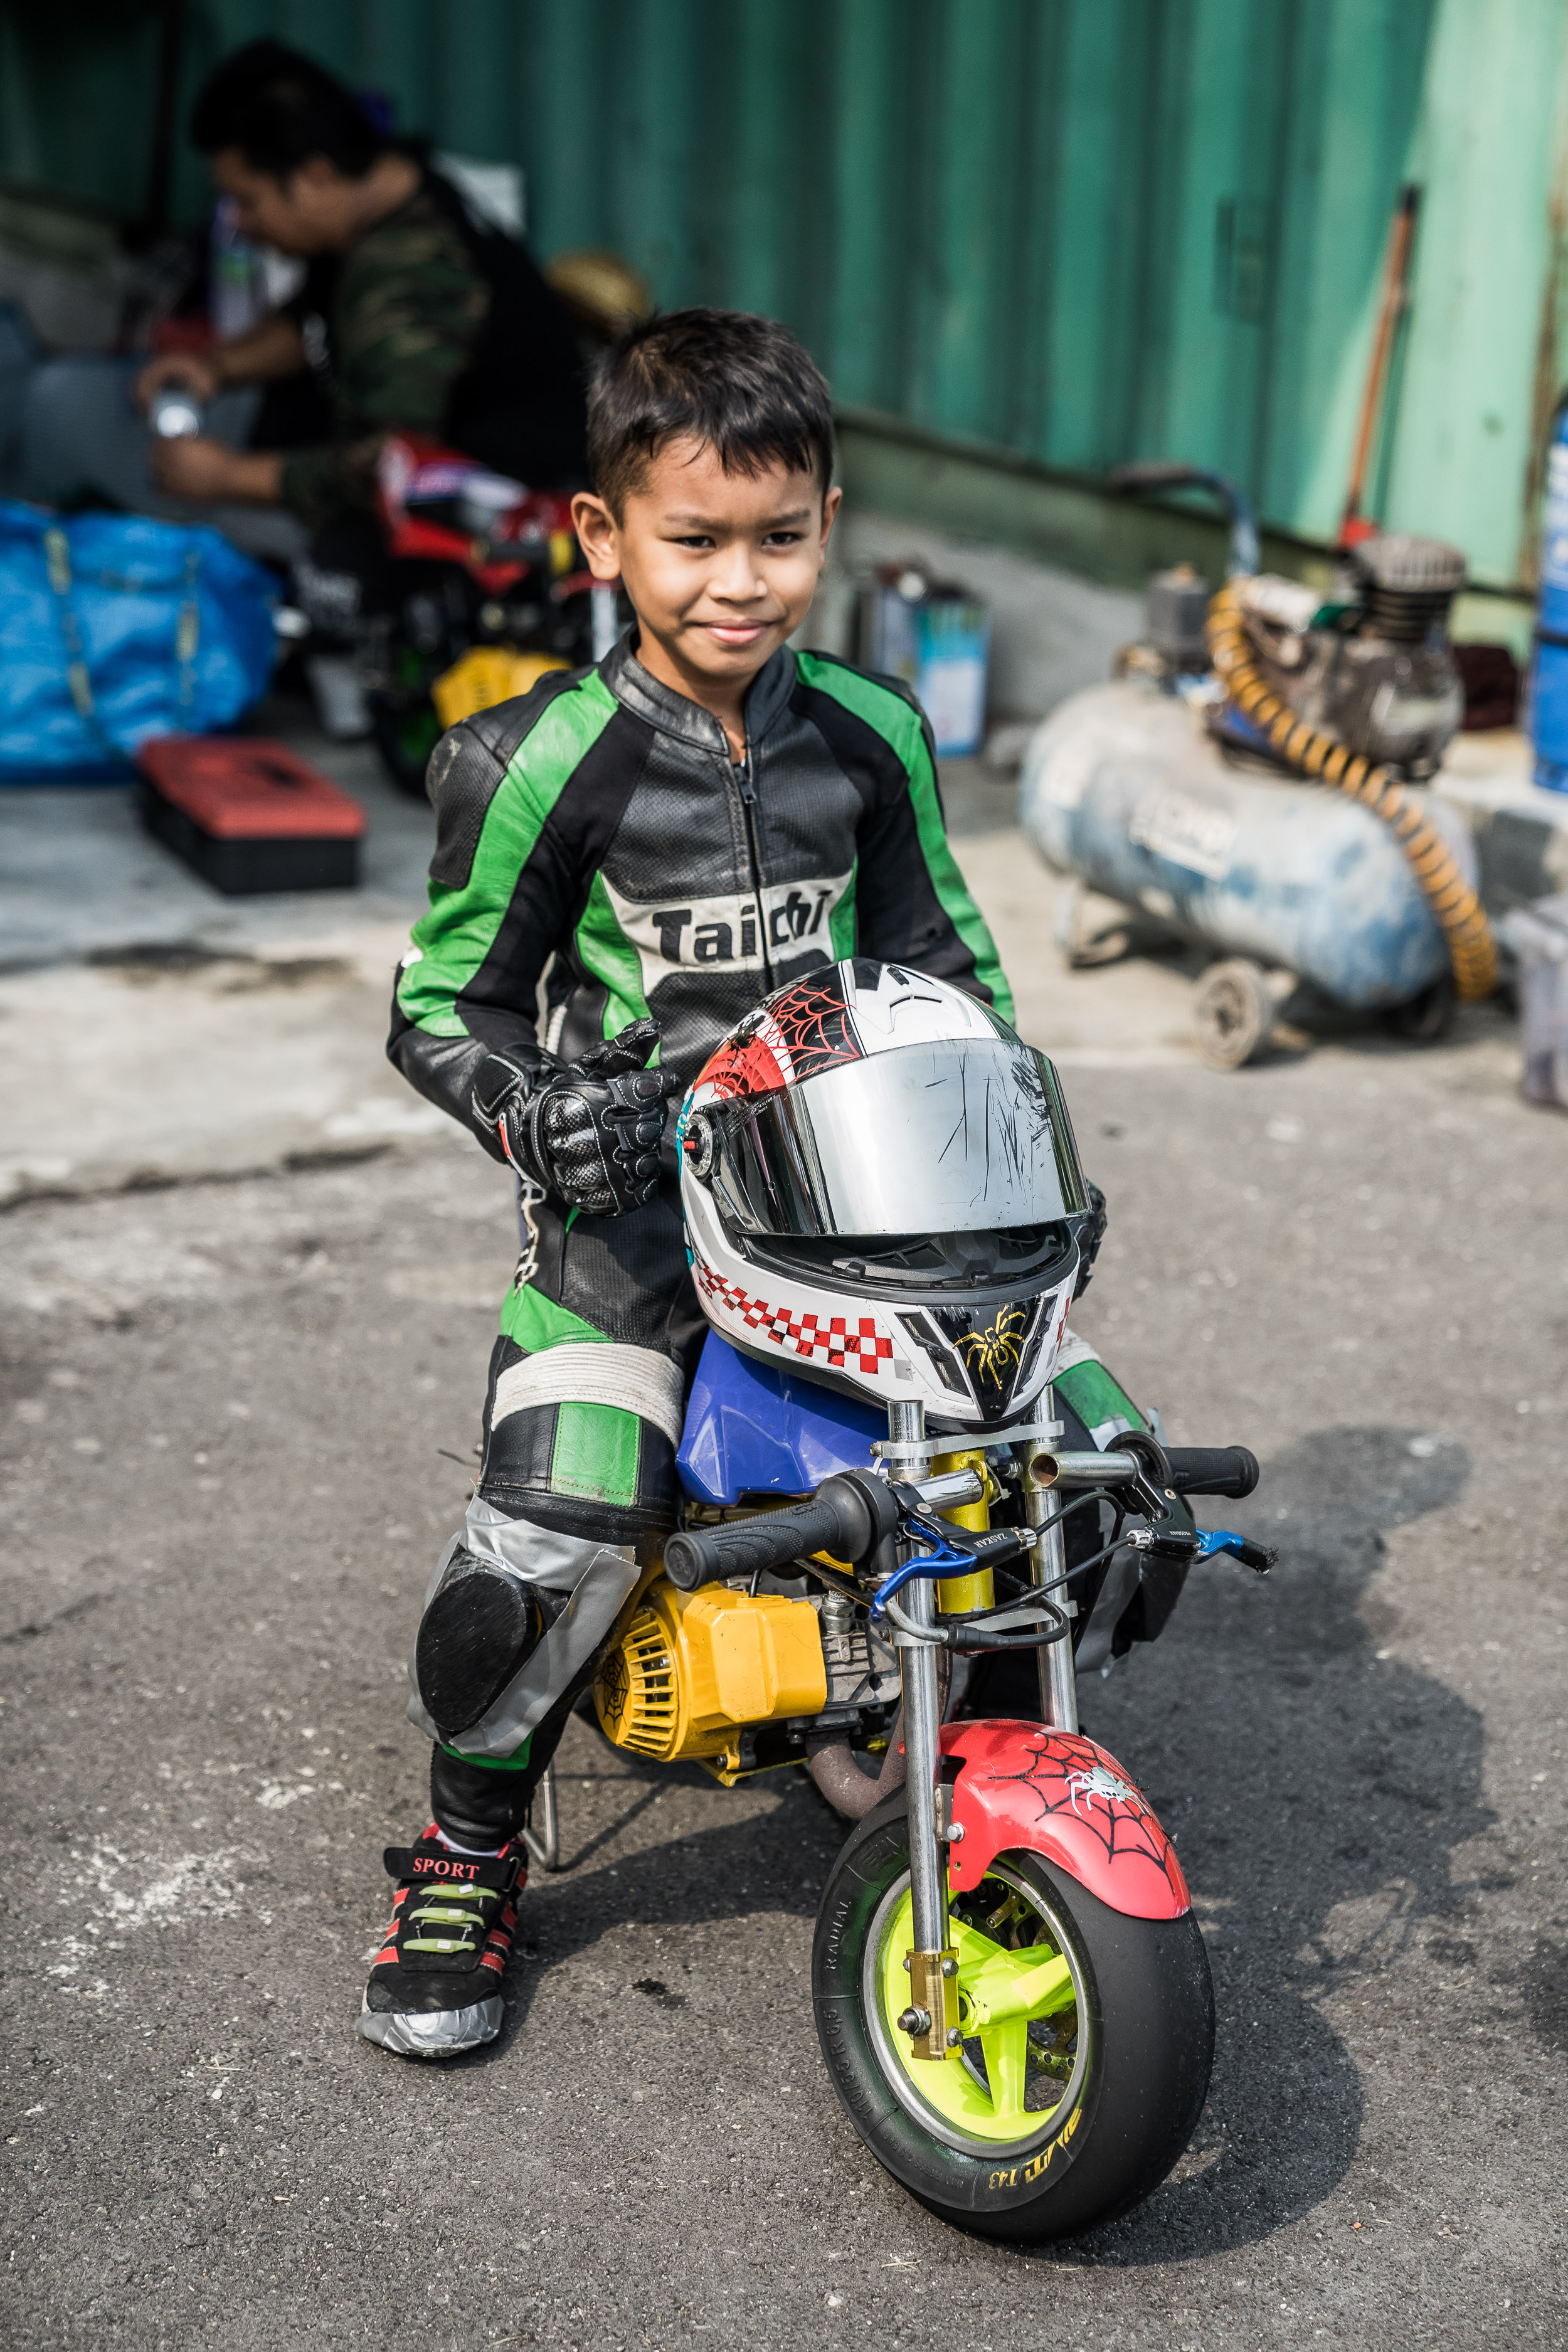 This kid has won a couple of races already and he's so young!